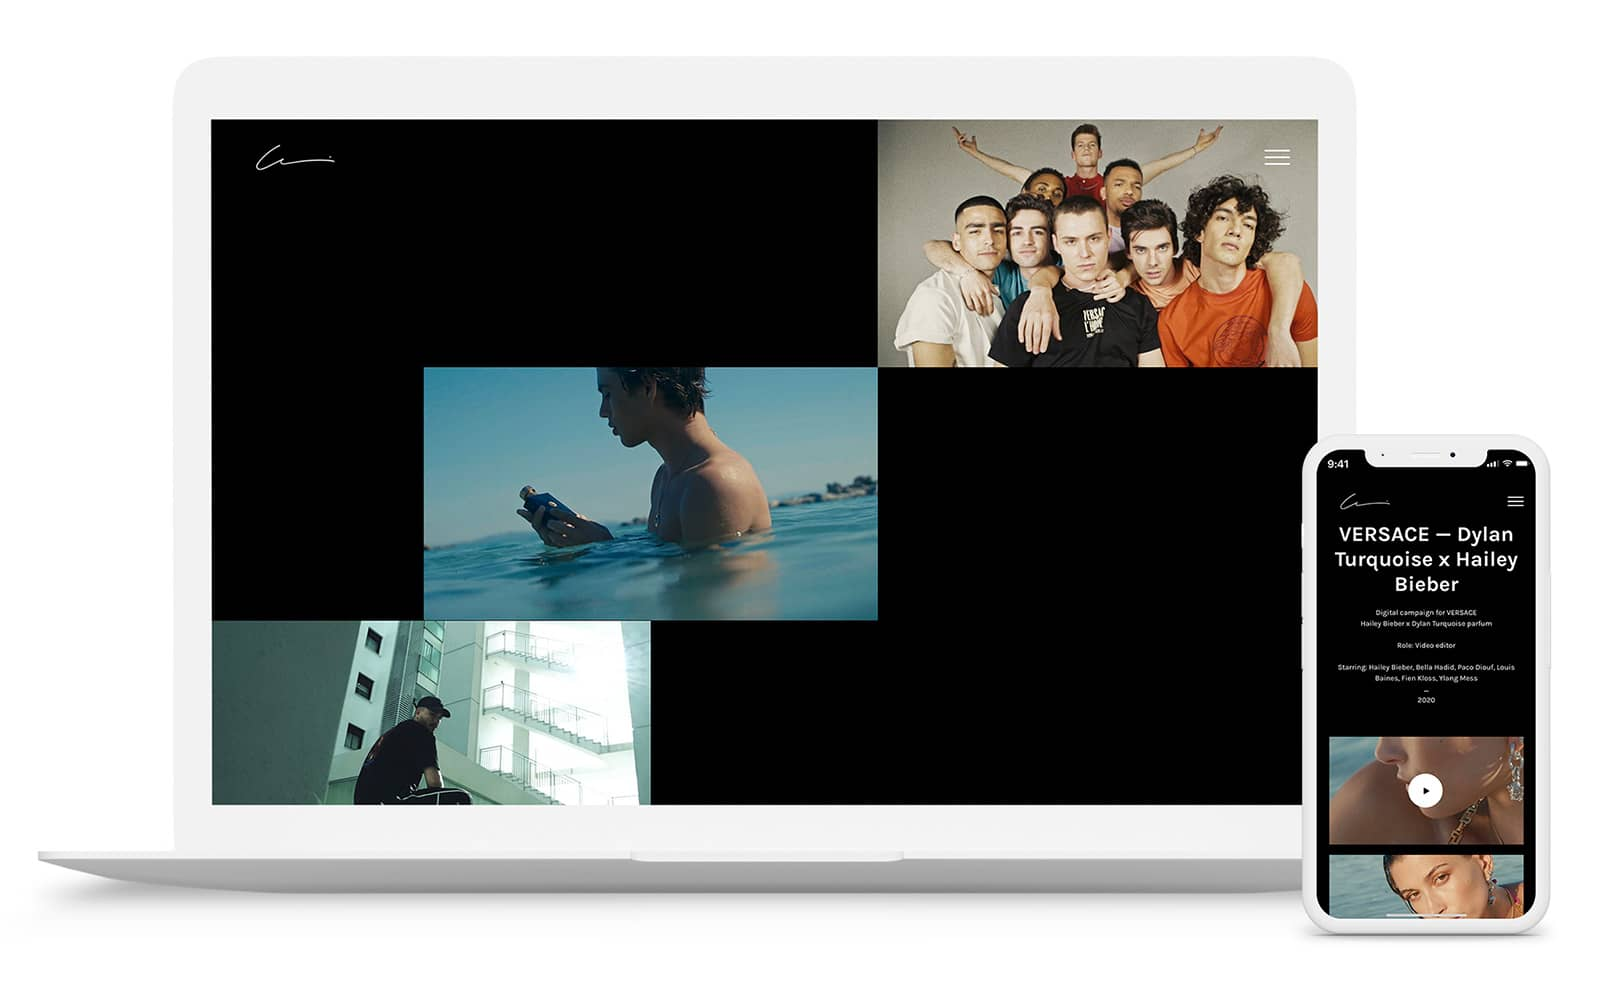 Vsble videography website design preview for desktop and mobile devices.